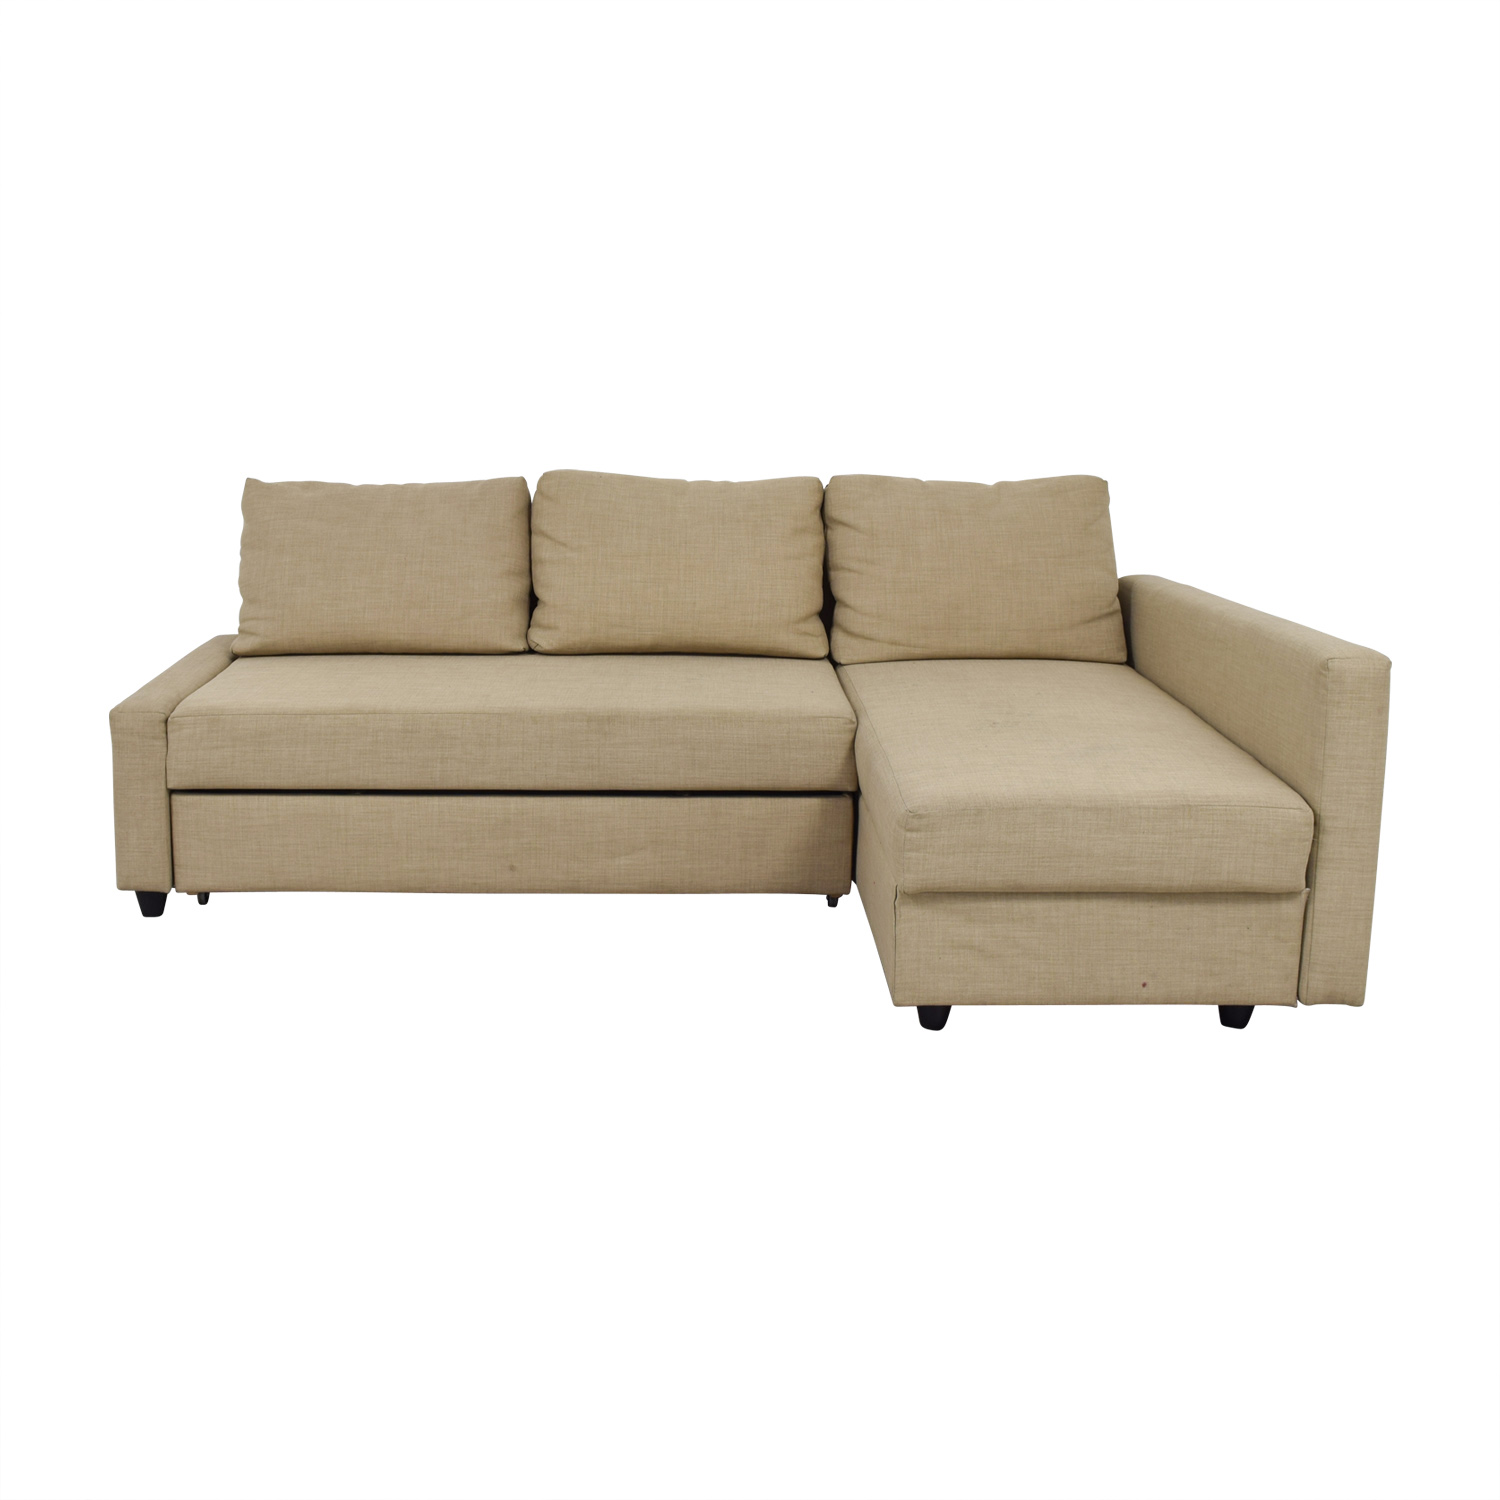 low priced 48d81 518d1 36% OFF - IKEA IKEA Friheten Beige Sleeper Sectional / Sofas